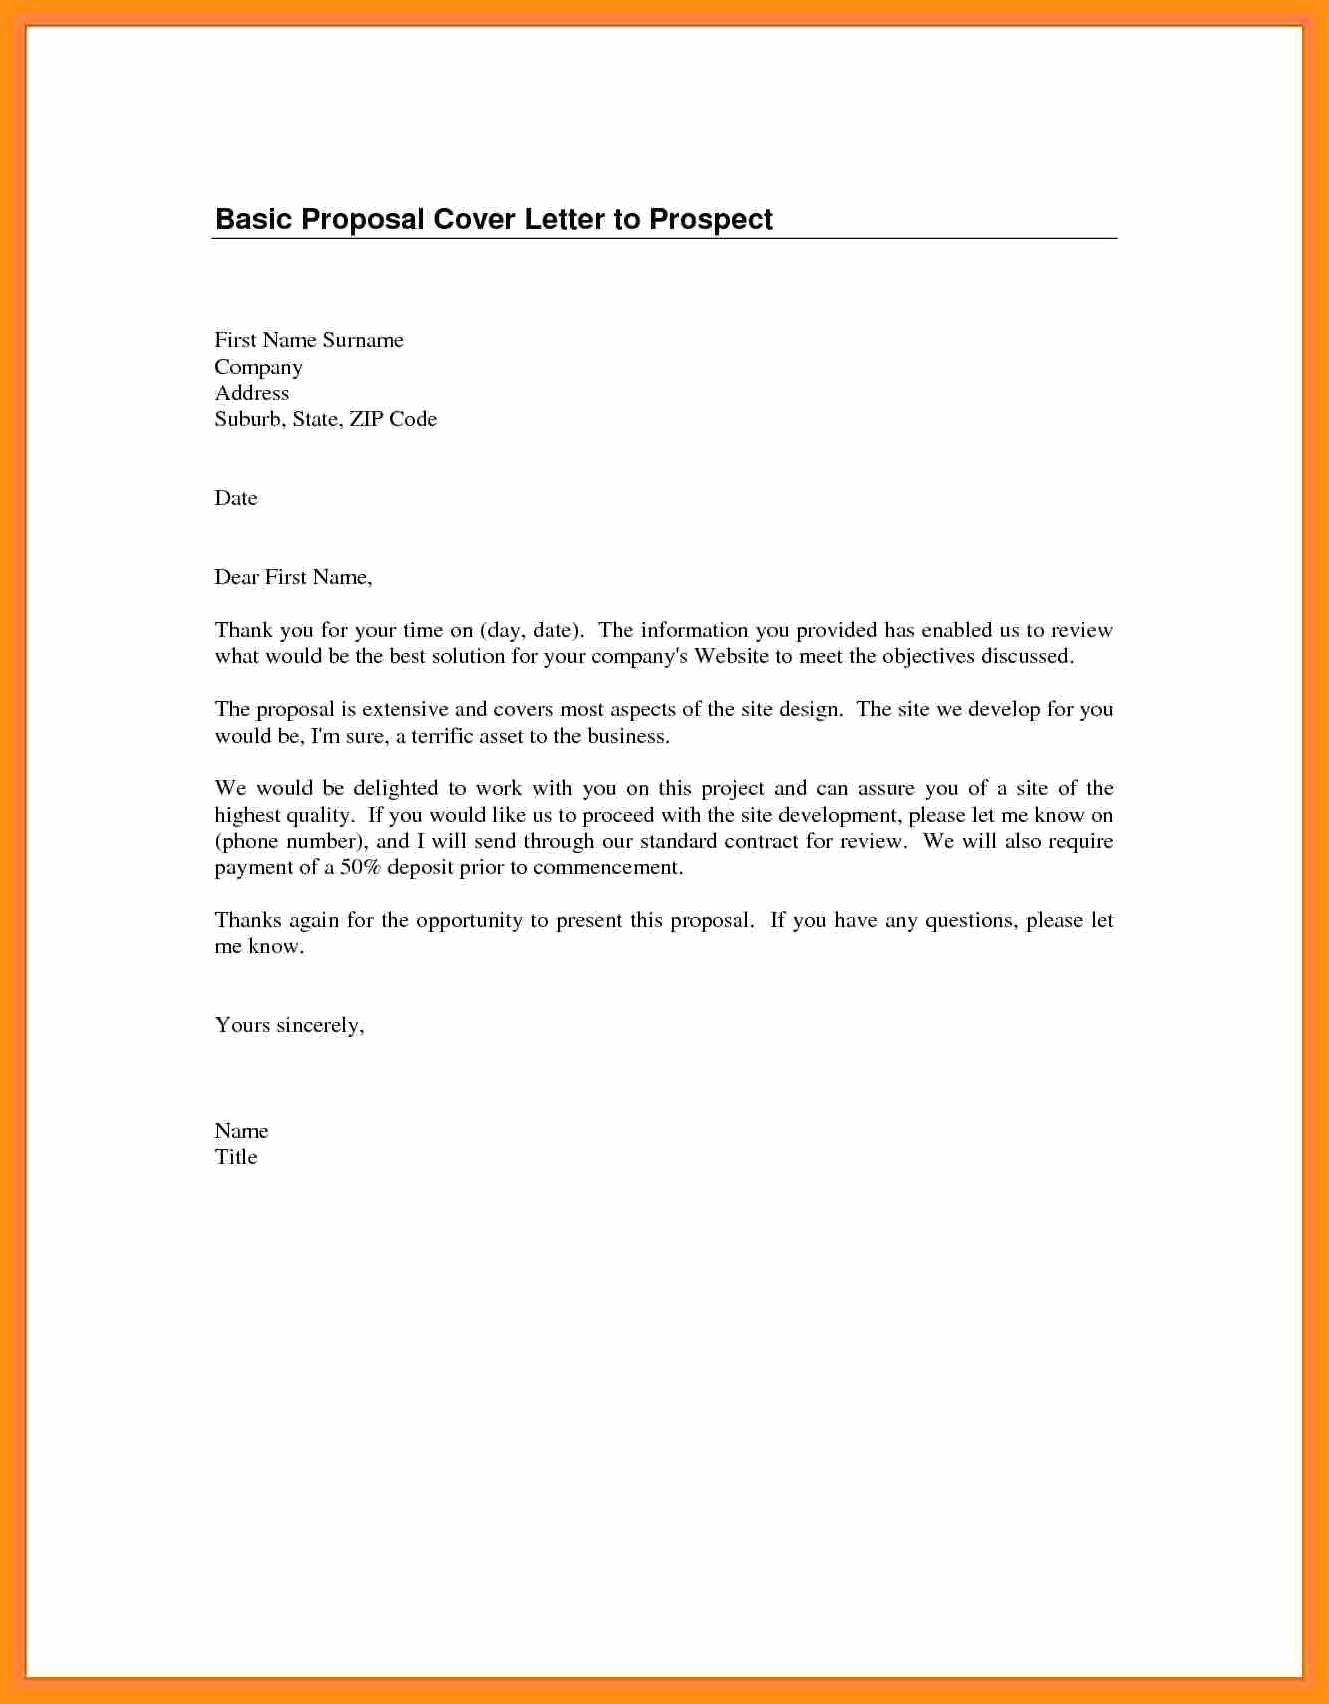 Emailed Cover Letter format Inspirational Basic Cover Letter for Any Job